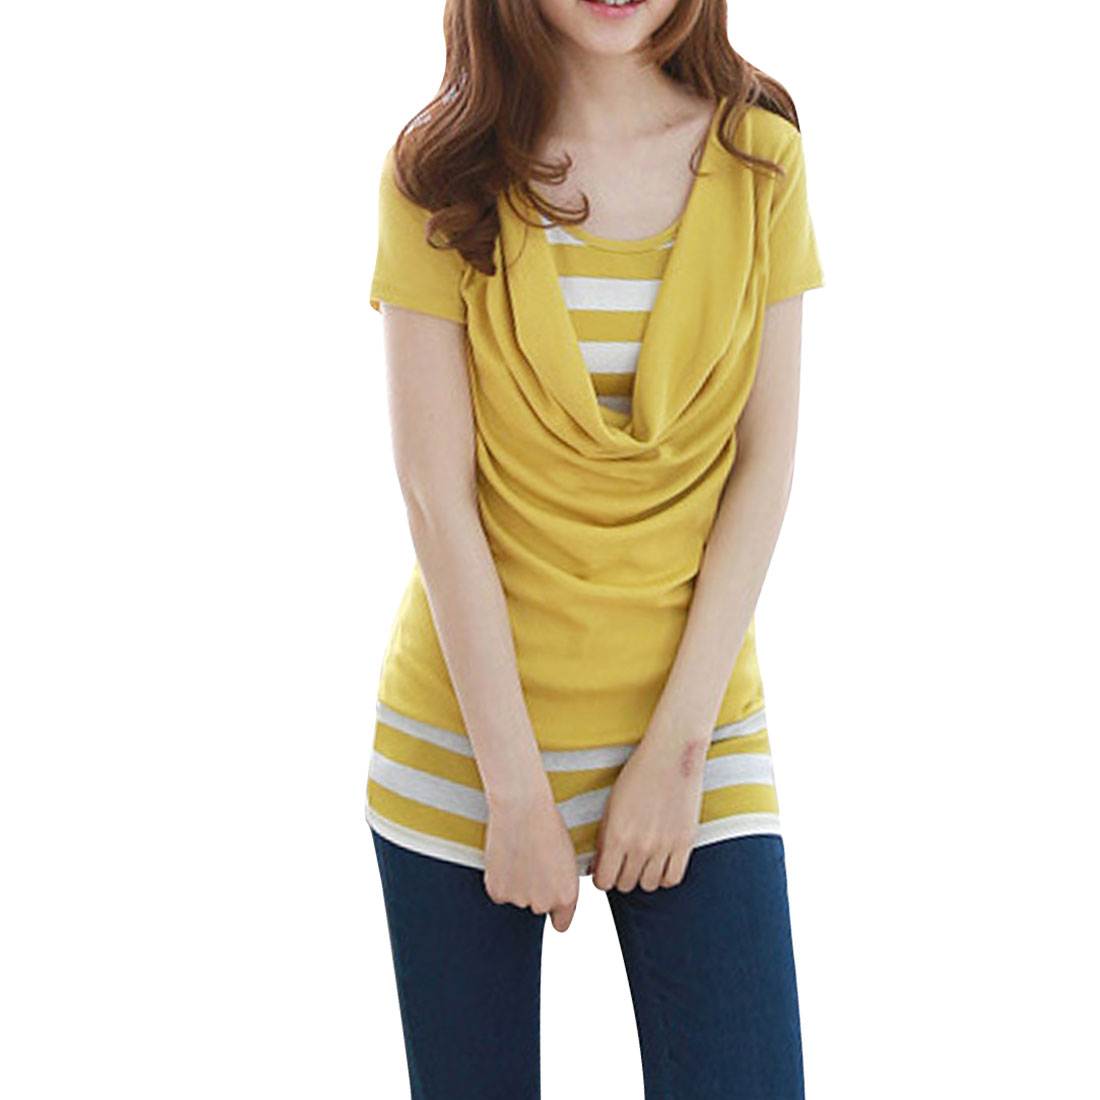 Women Fashion Cowl Neck Stripes Pattern Pullover Dark Yellow White Shirt XS